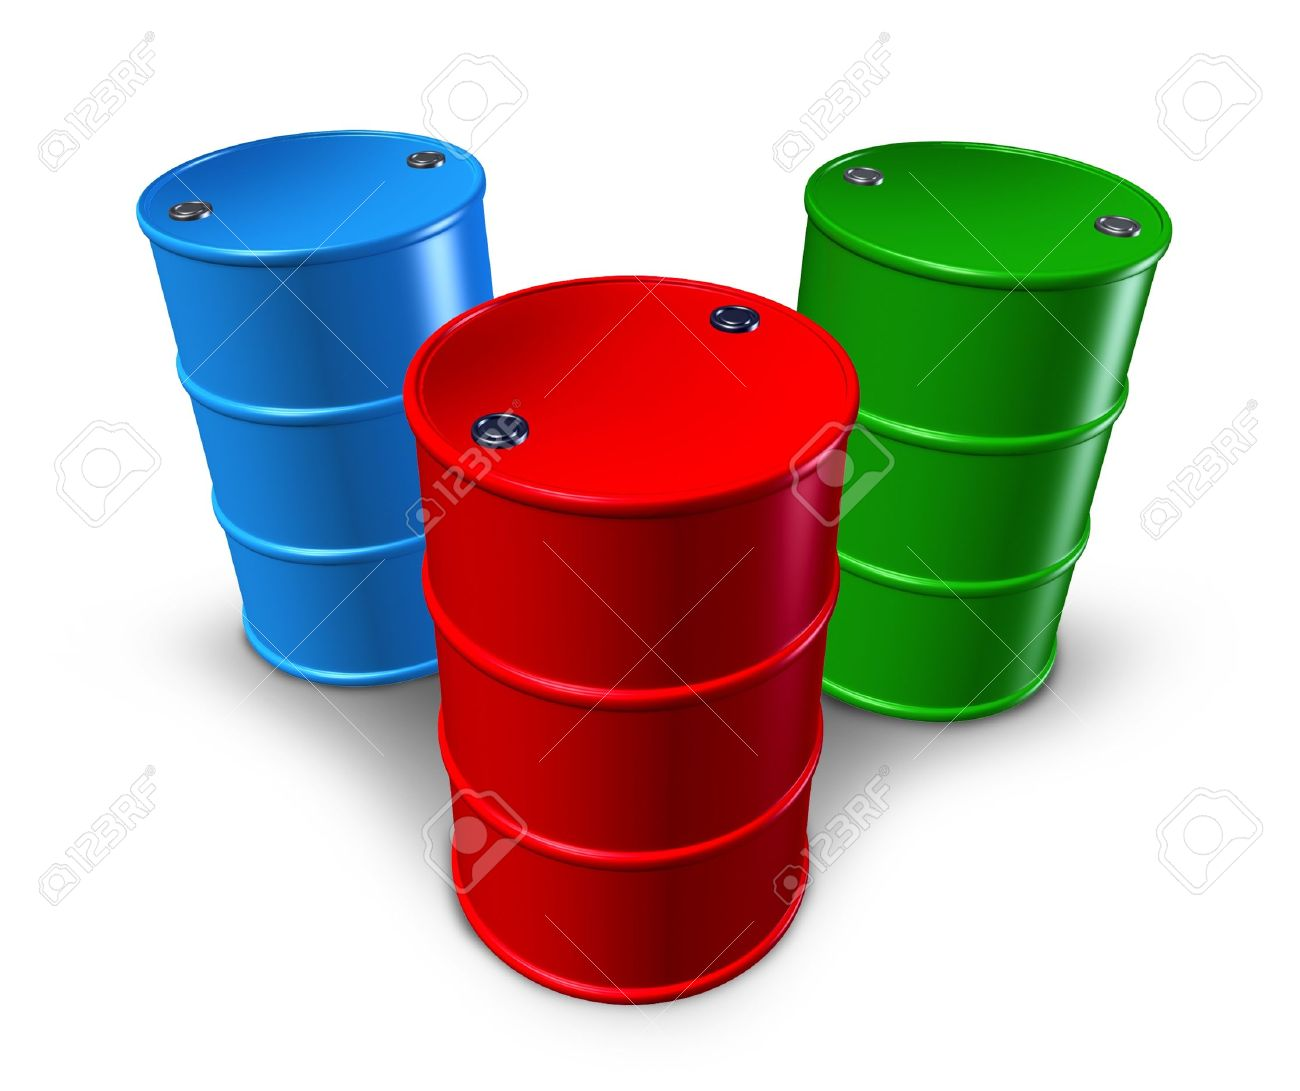 Metal Barrels And Drums With Multiple Colors Representing Toxic.